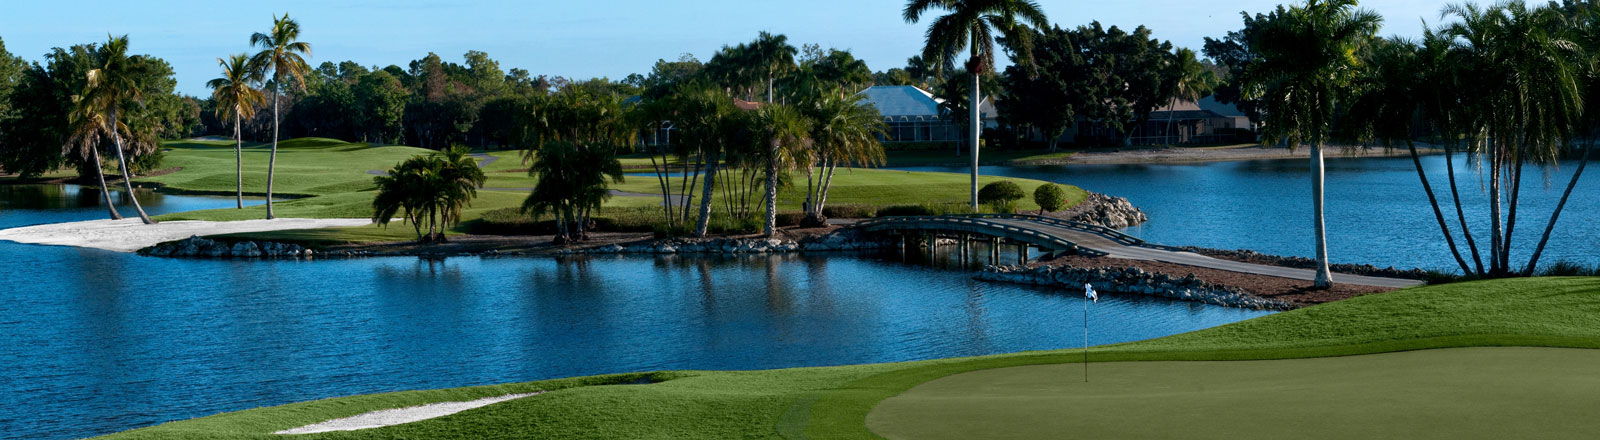 Lely Resort Golf and Country Club Header